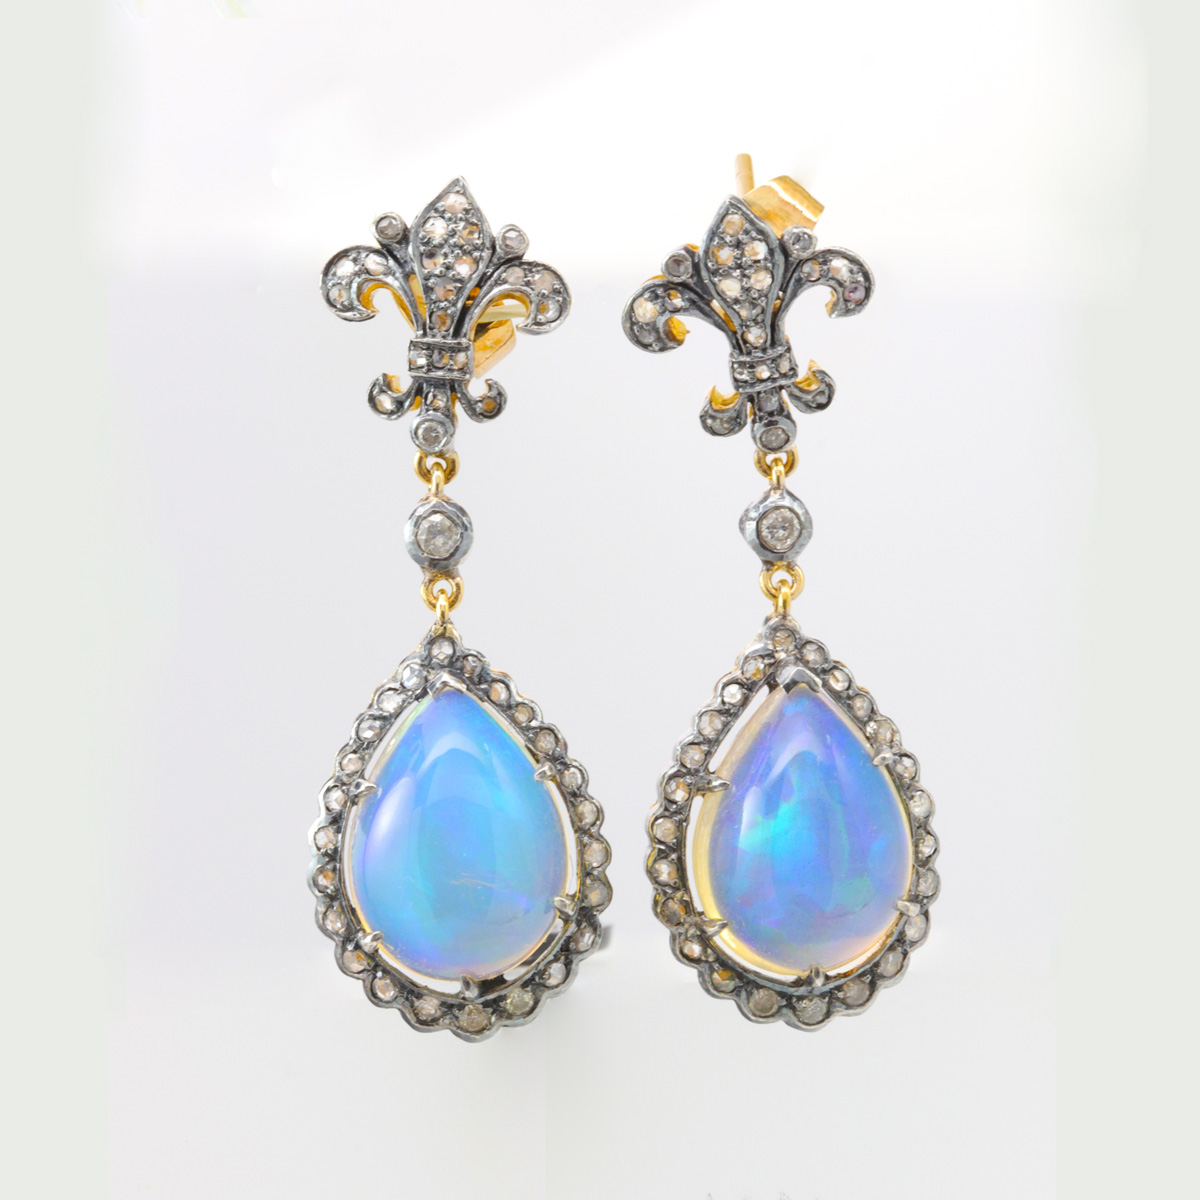 Vintage Moonstone Tear Drop Earrings with Diamond Accents